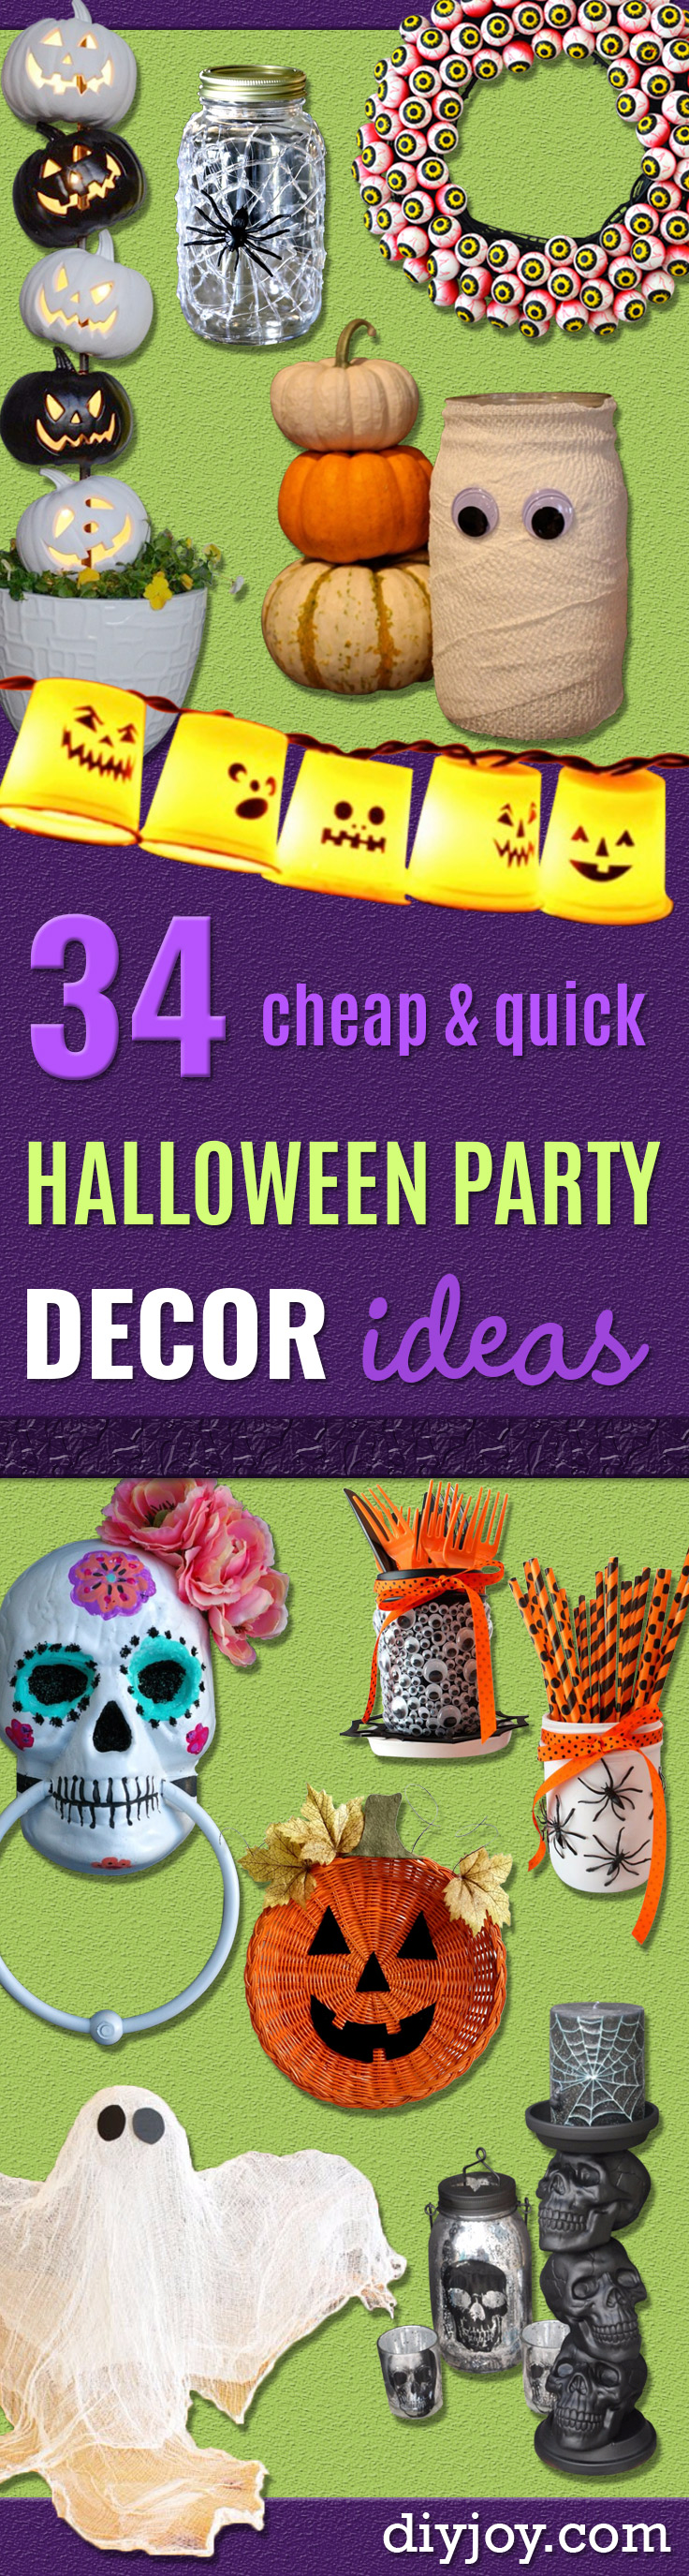 diy halloween decorations best easy cheap and quick halloween decor ideas and crafts for - Quick Halloween Decorations